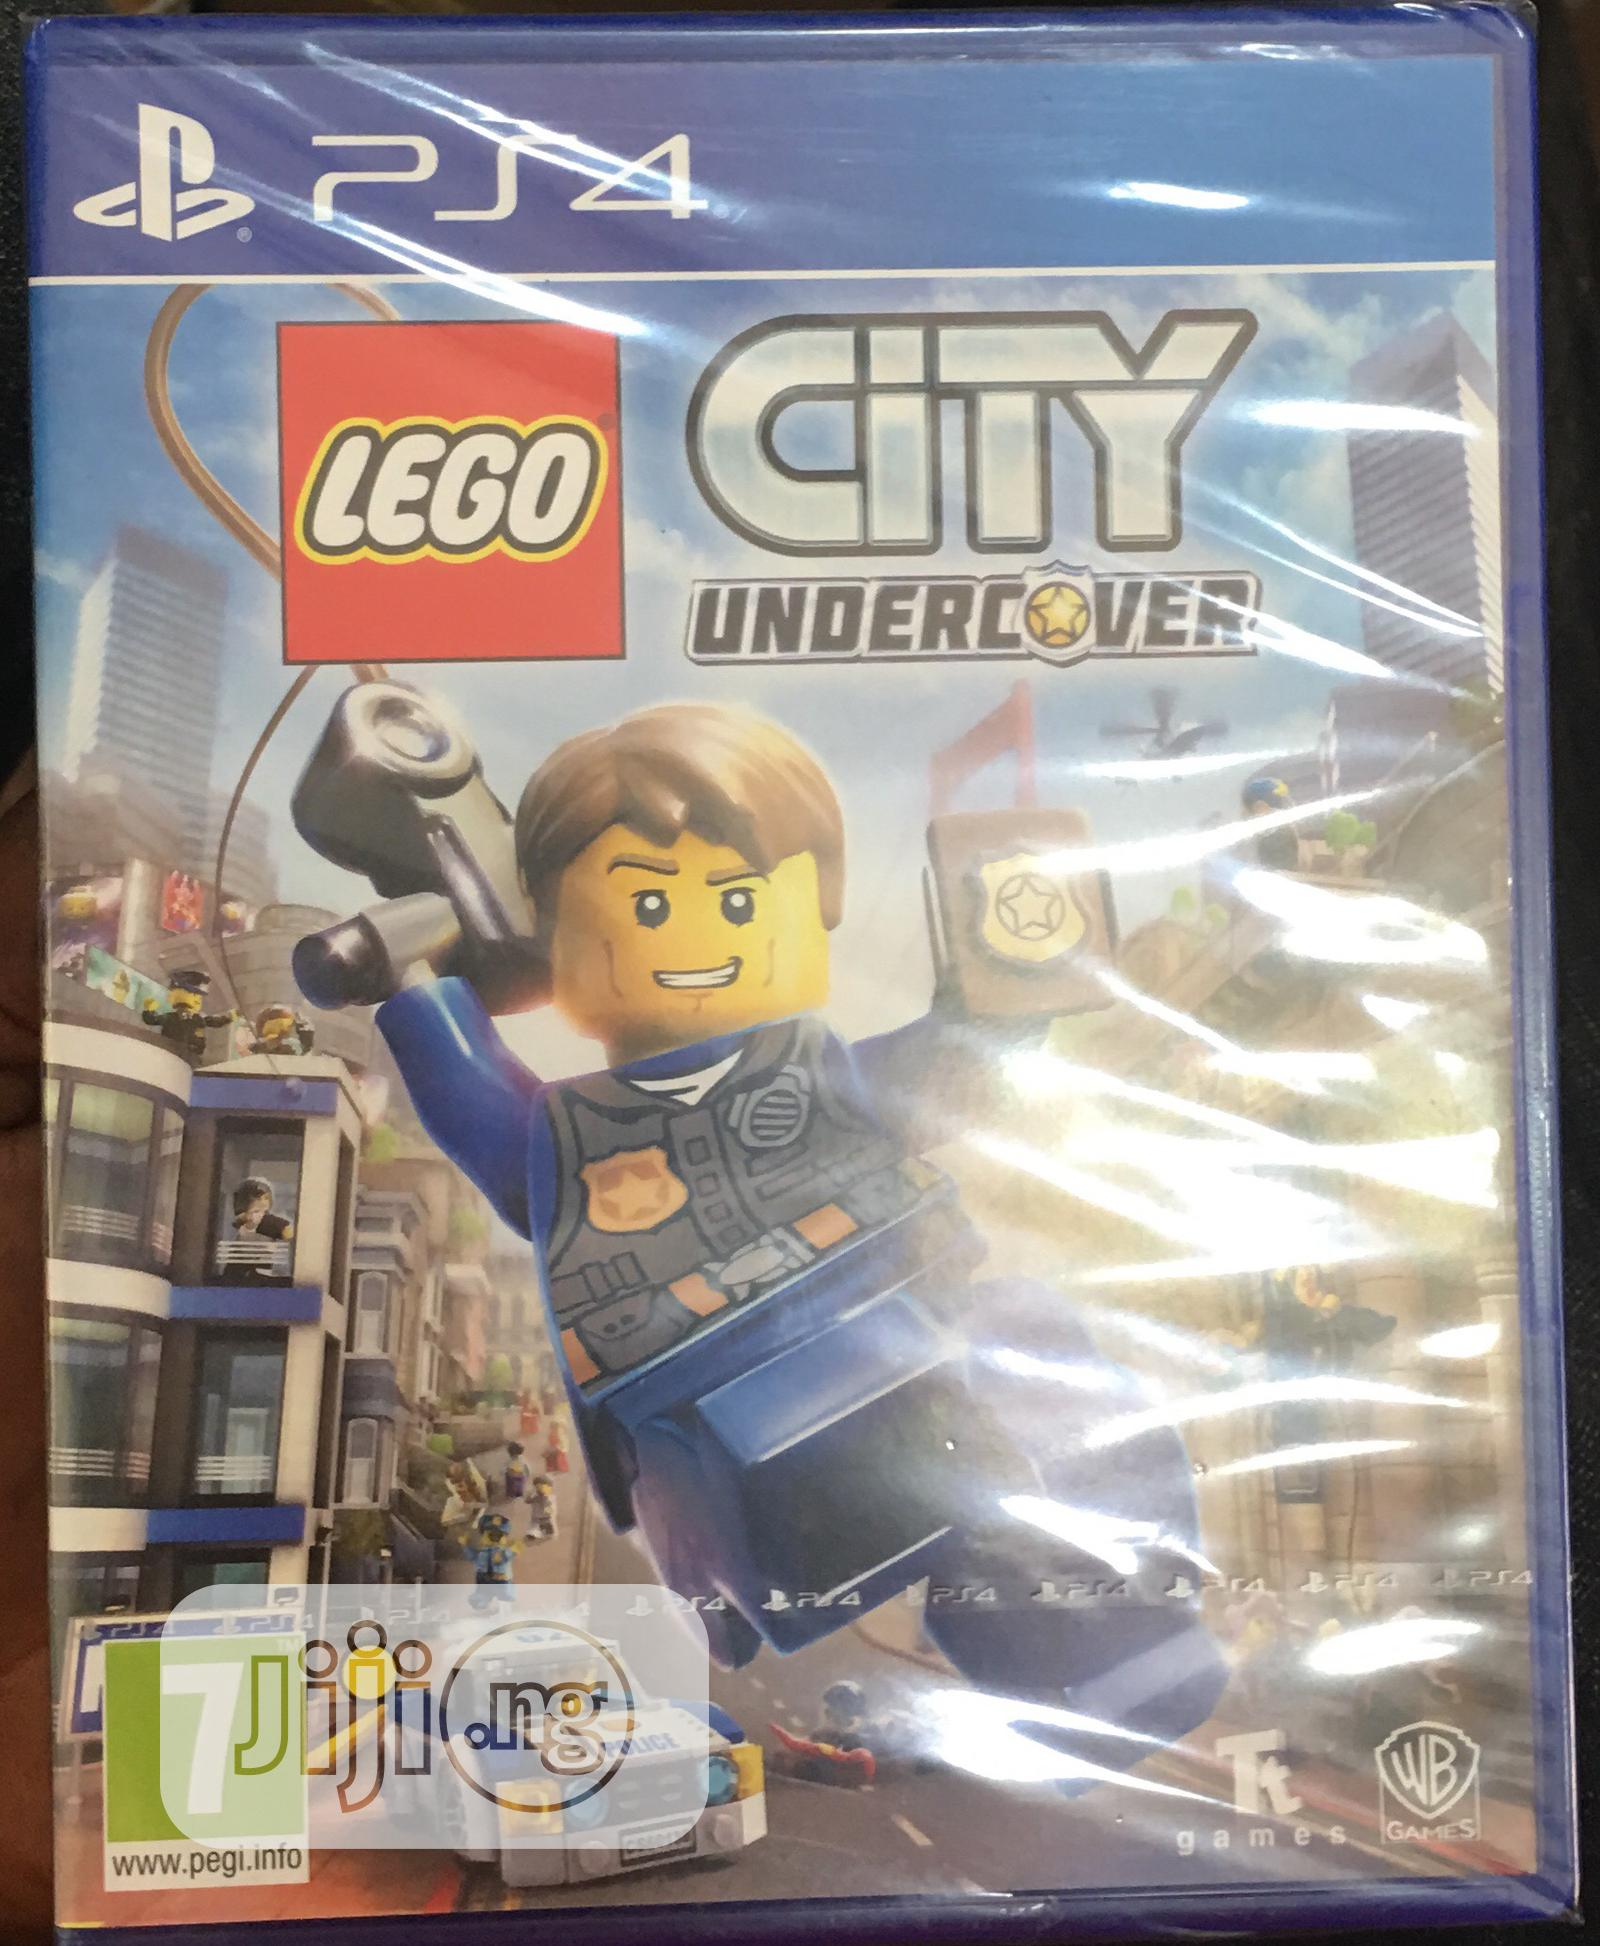 Brand New PS4 LEGO City Undercover   Video Games for sale in Ikeja, Lagos State, Nigeria